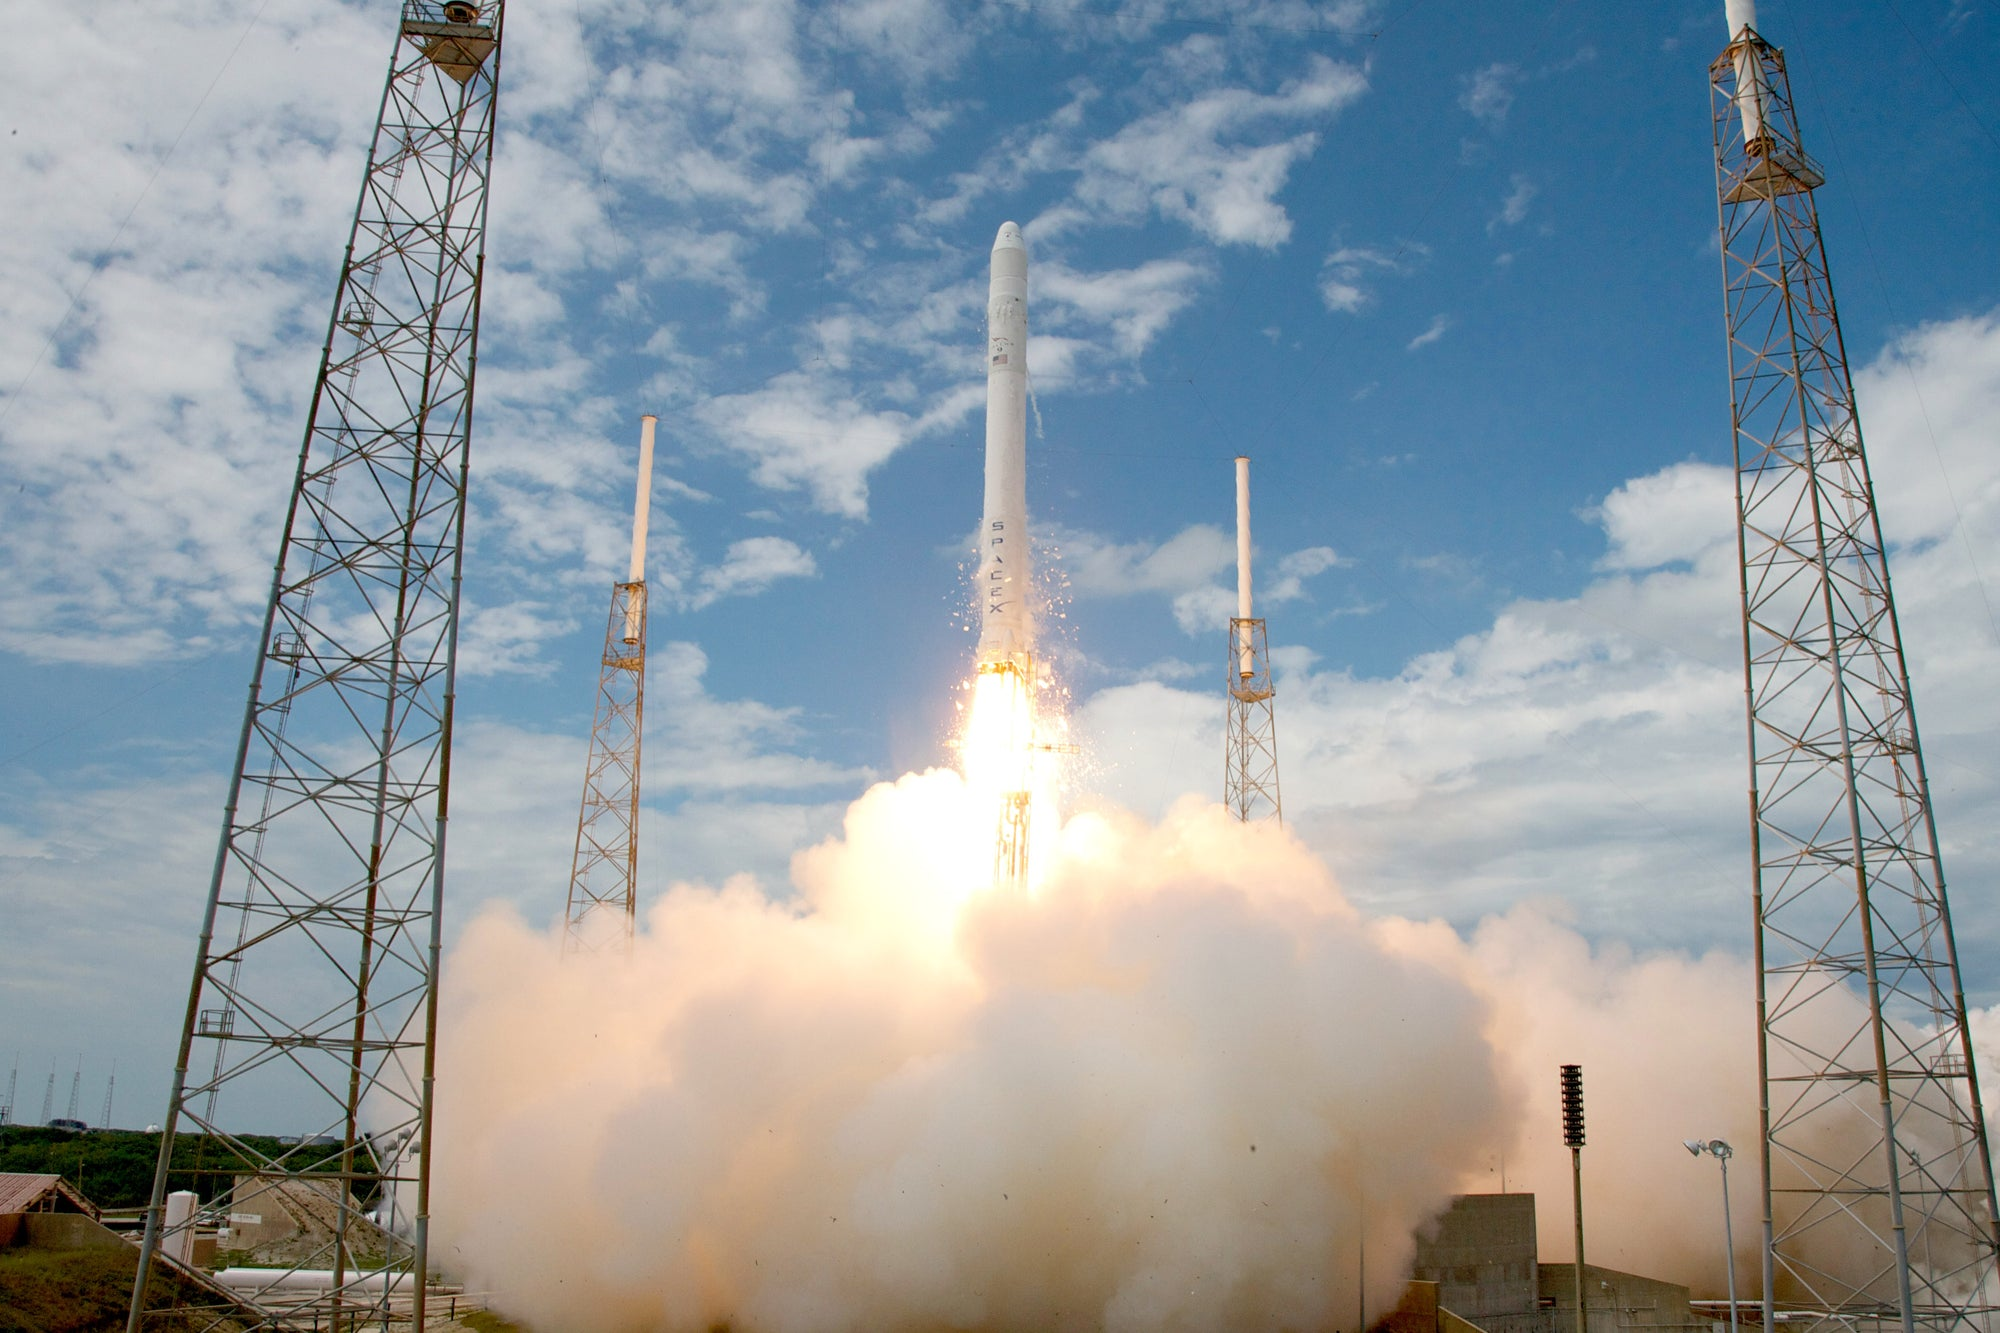 SpaceX's Falcon 9 rocket lifted off for the first time 10 years ago today